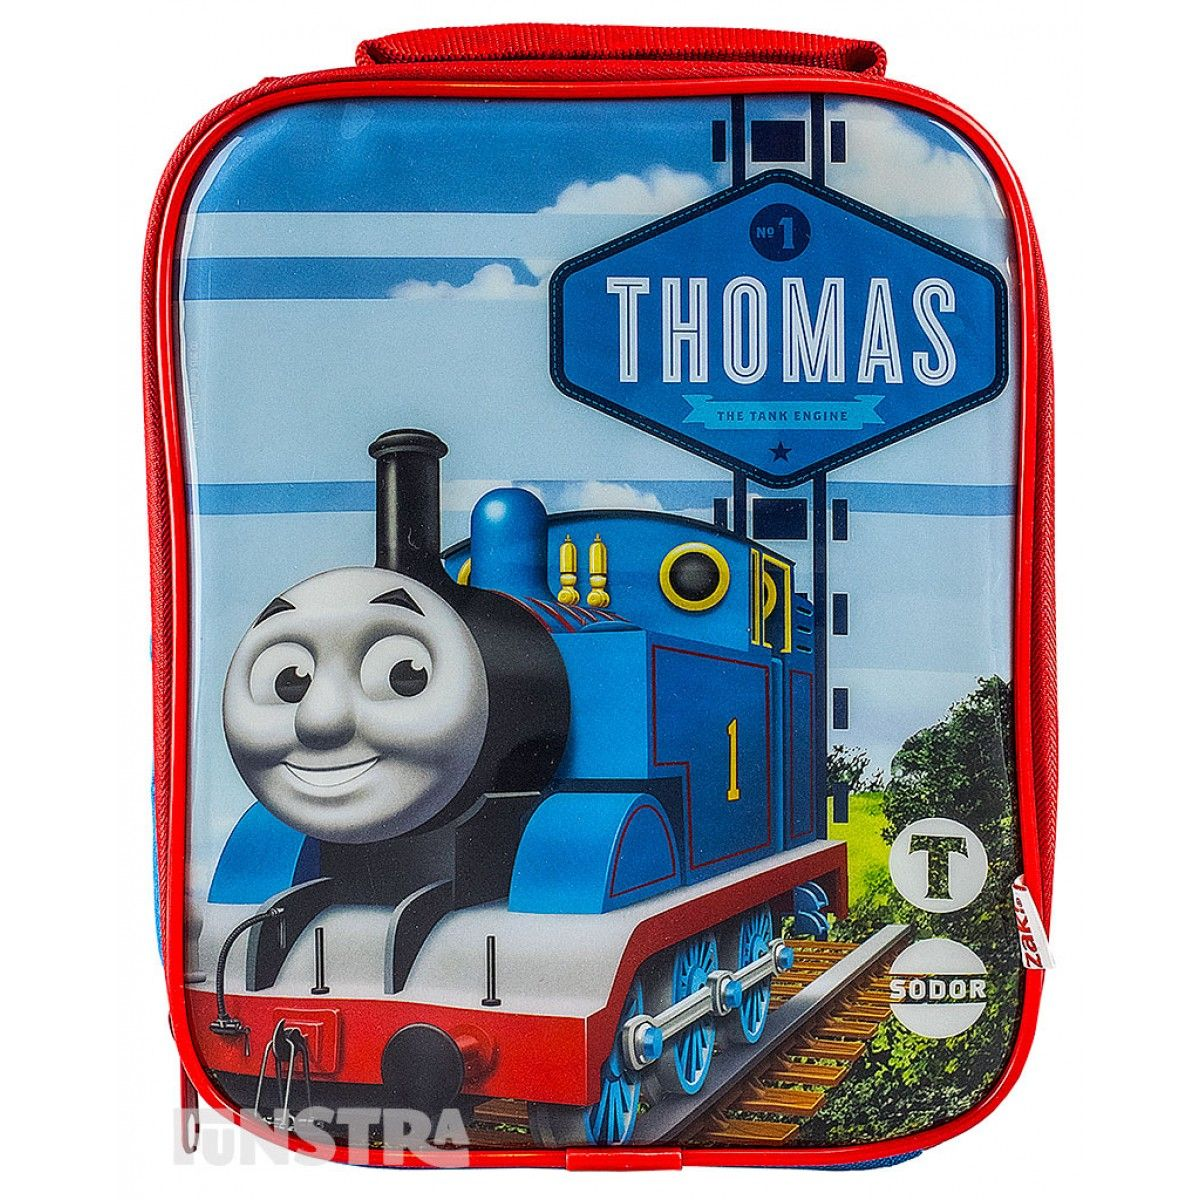 Little tikes thomas the train bed - Thomas The Tank Engine Lunch Bag